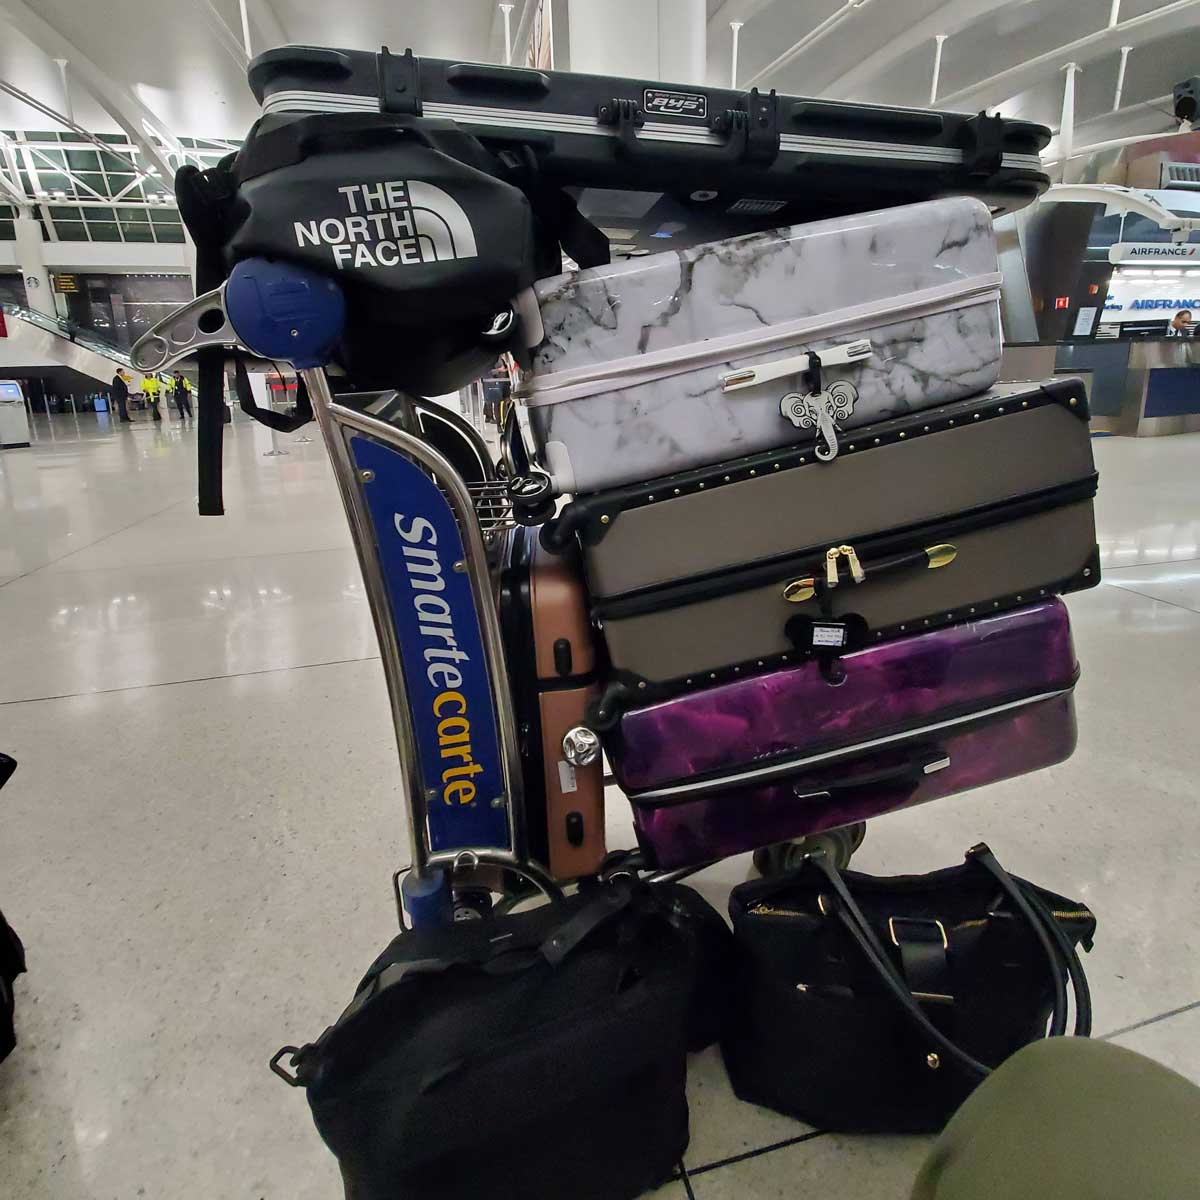 Anthony's bags, packed for his trip